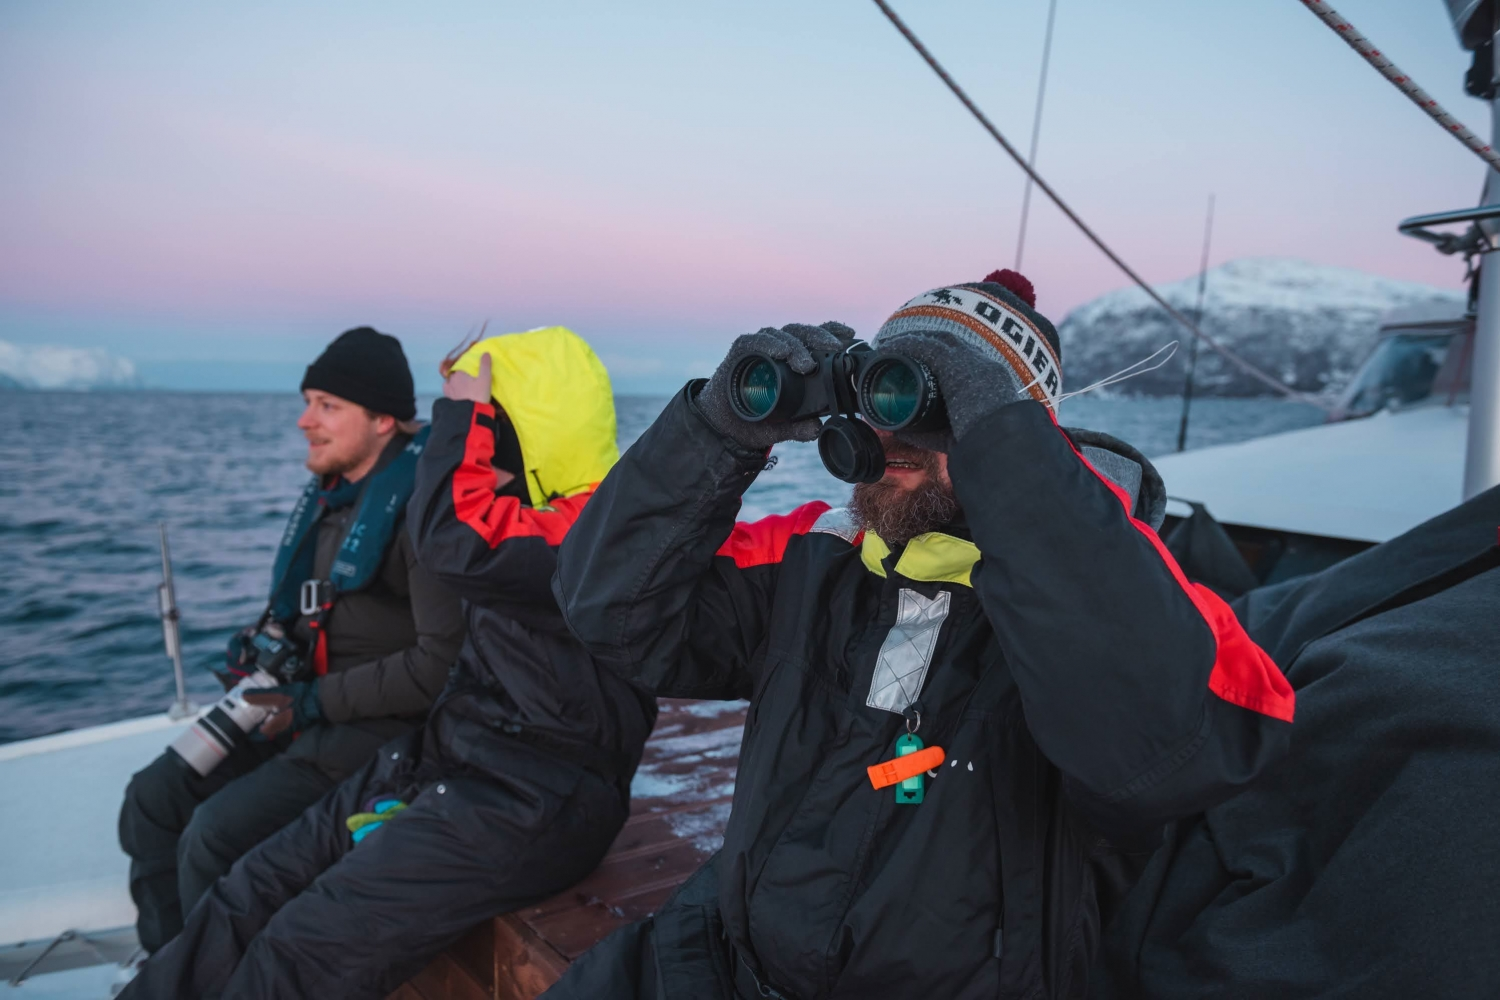 Guests searching for whales using binoculars